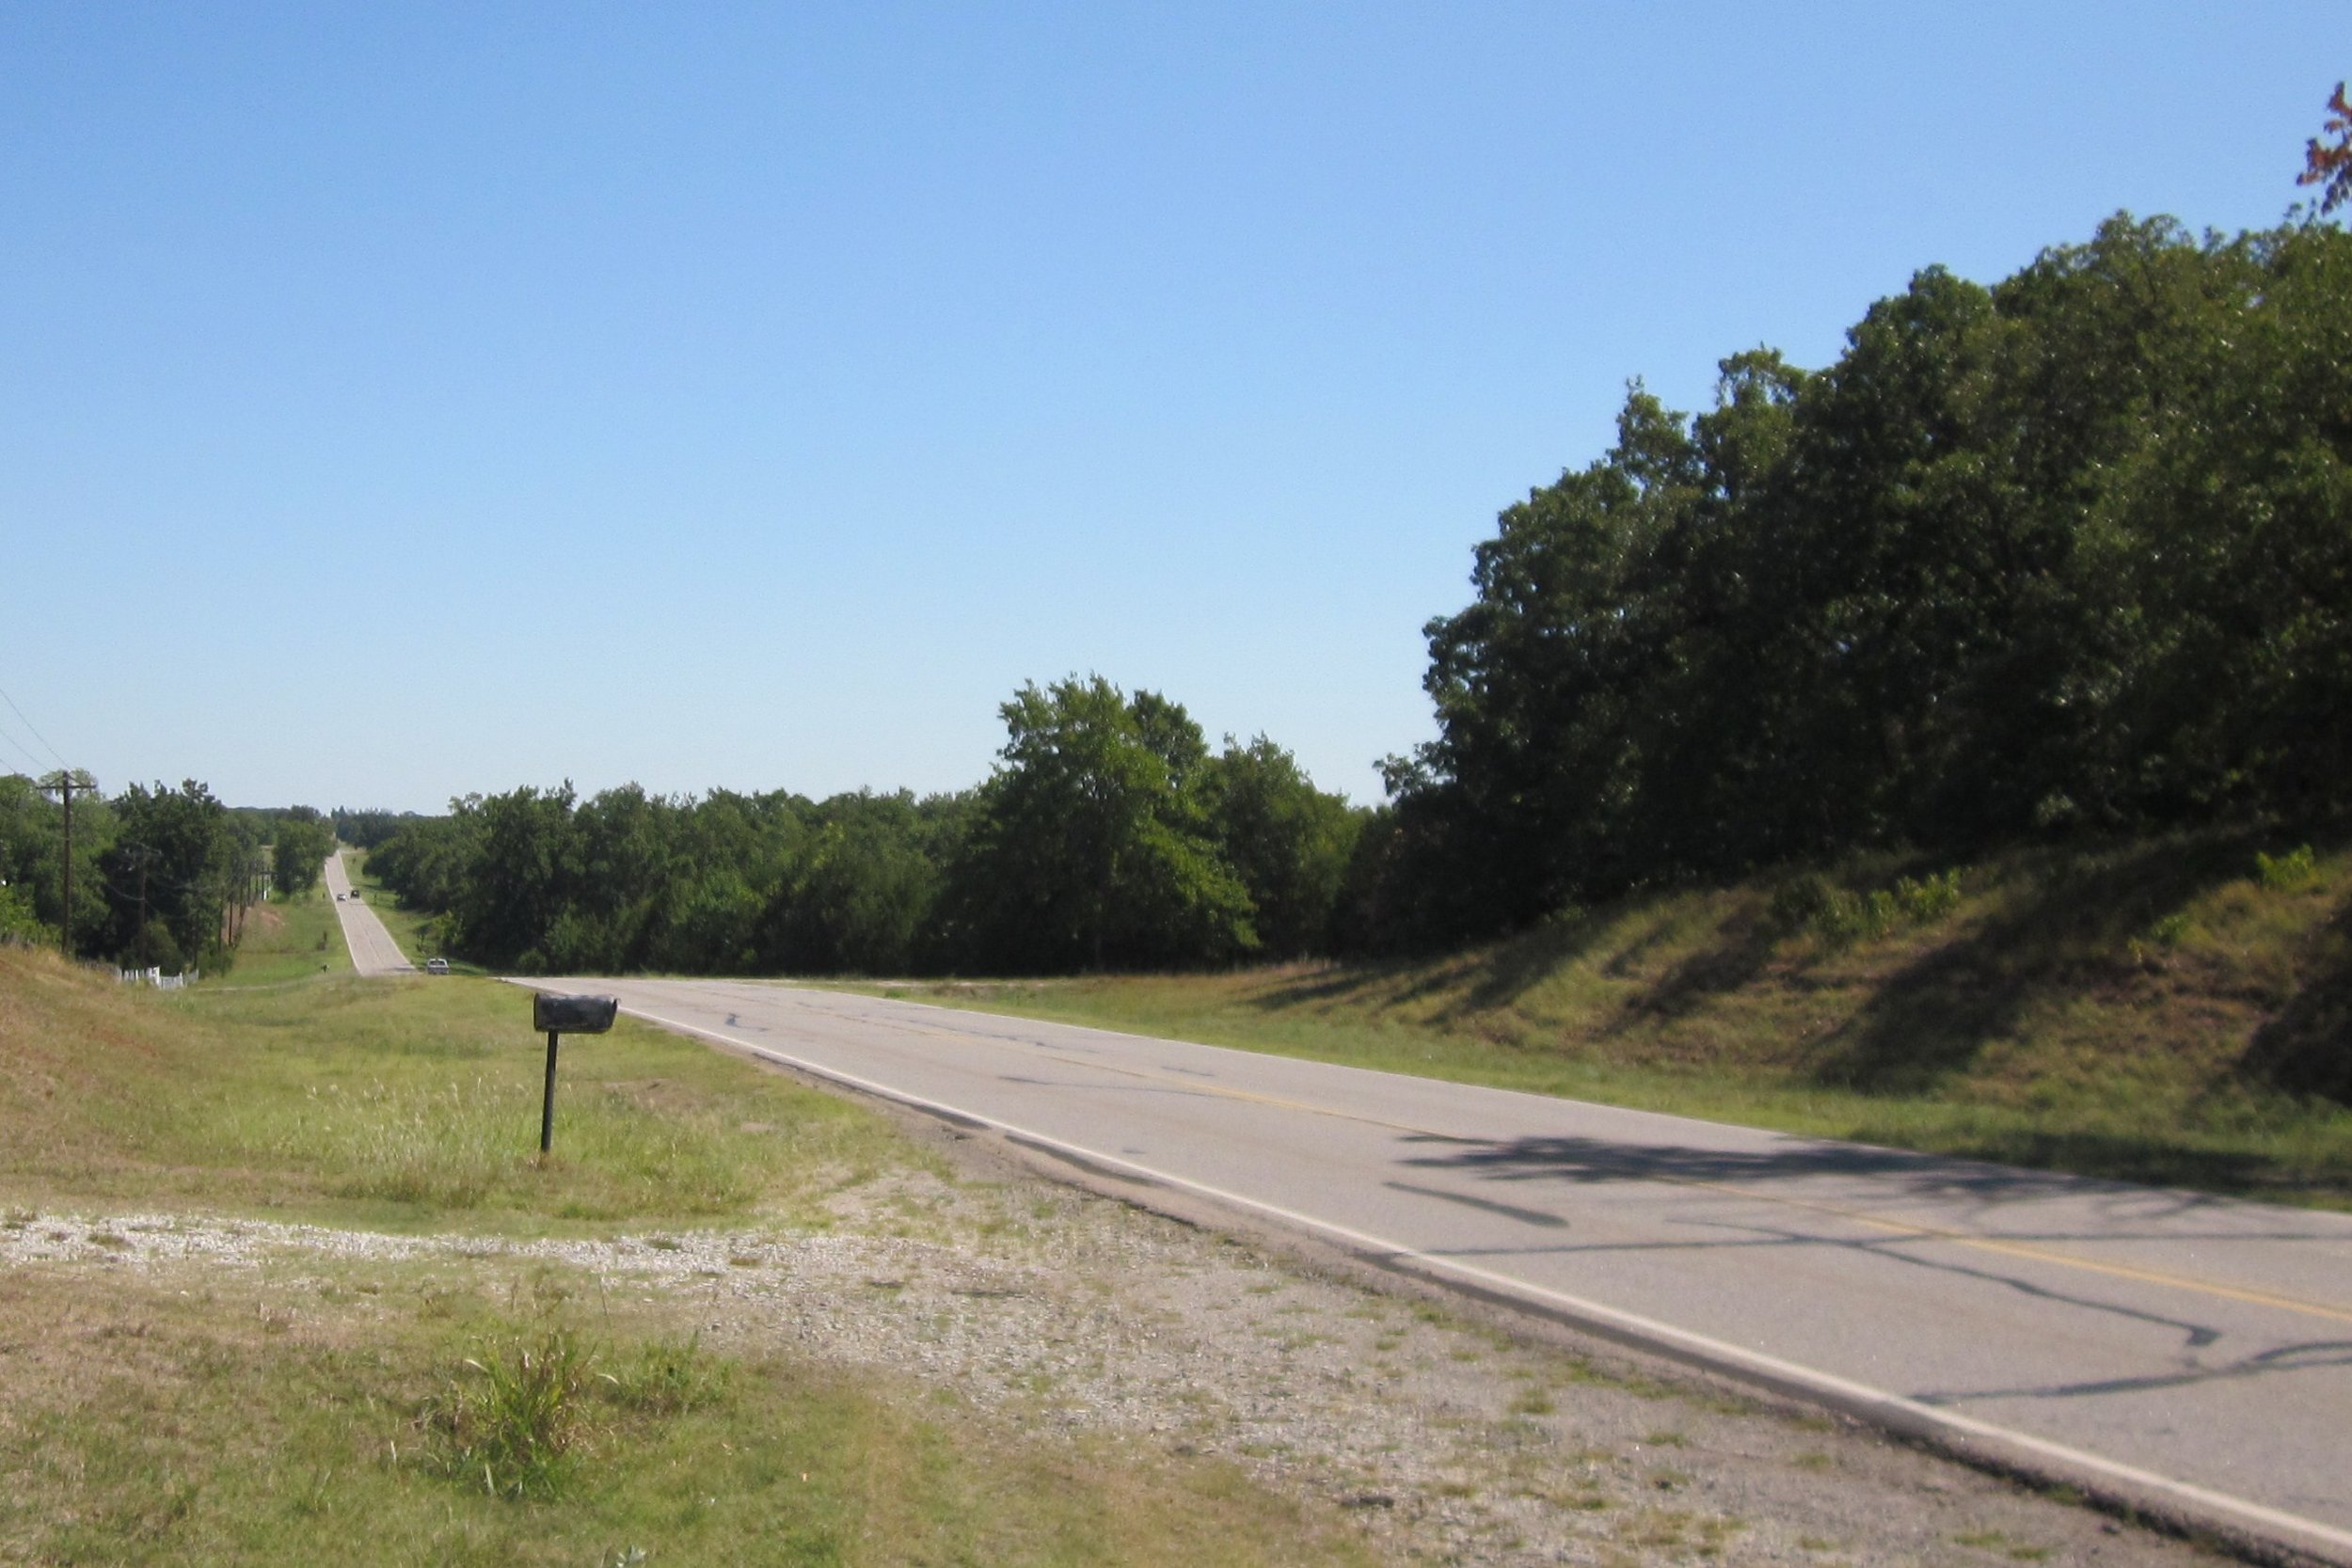 THE SITE of Avatar Meher Baba's automobile accident on May 24, 1952, near Prague, OK. (Photo: Wayne Myers)